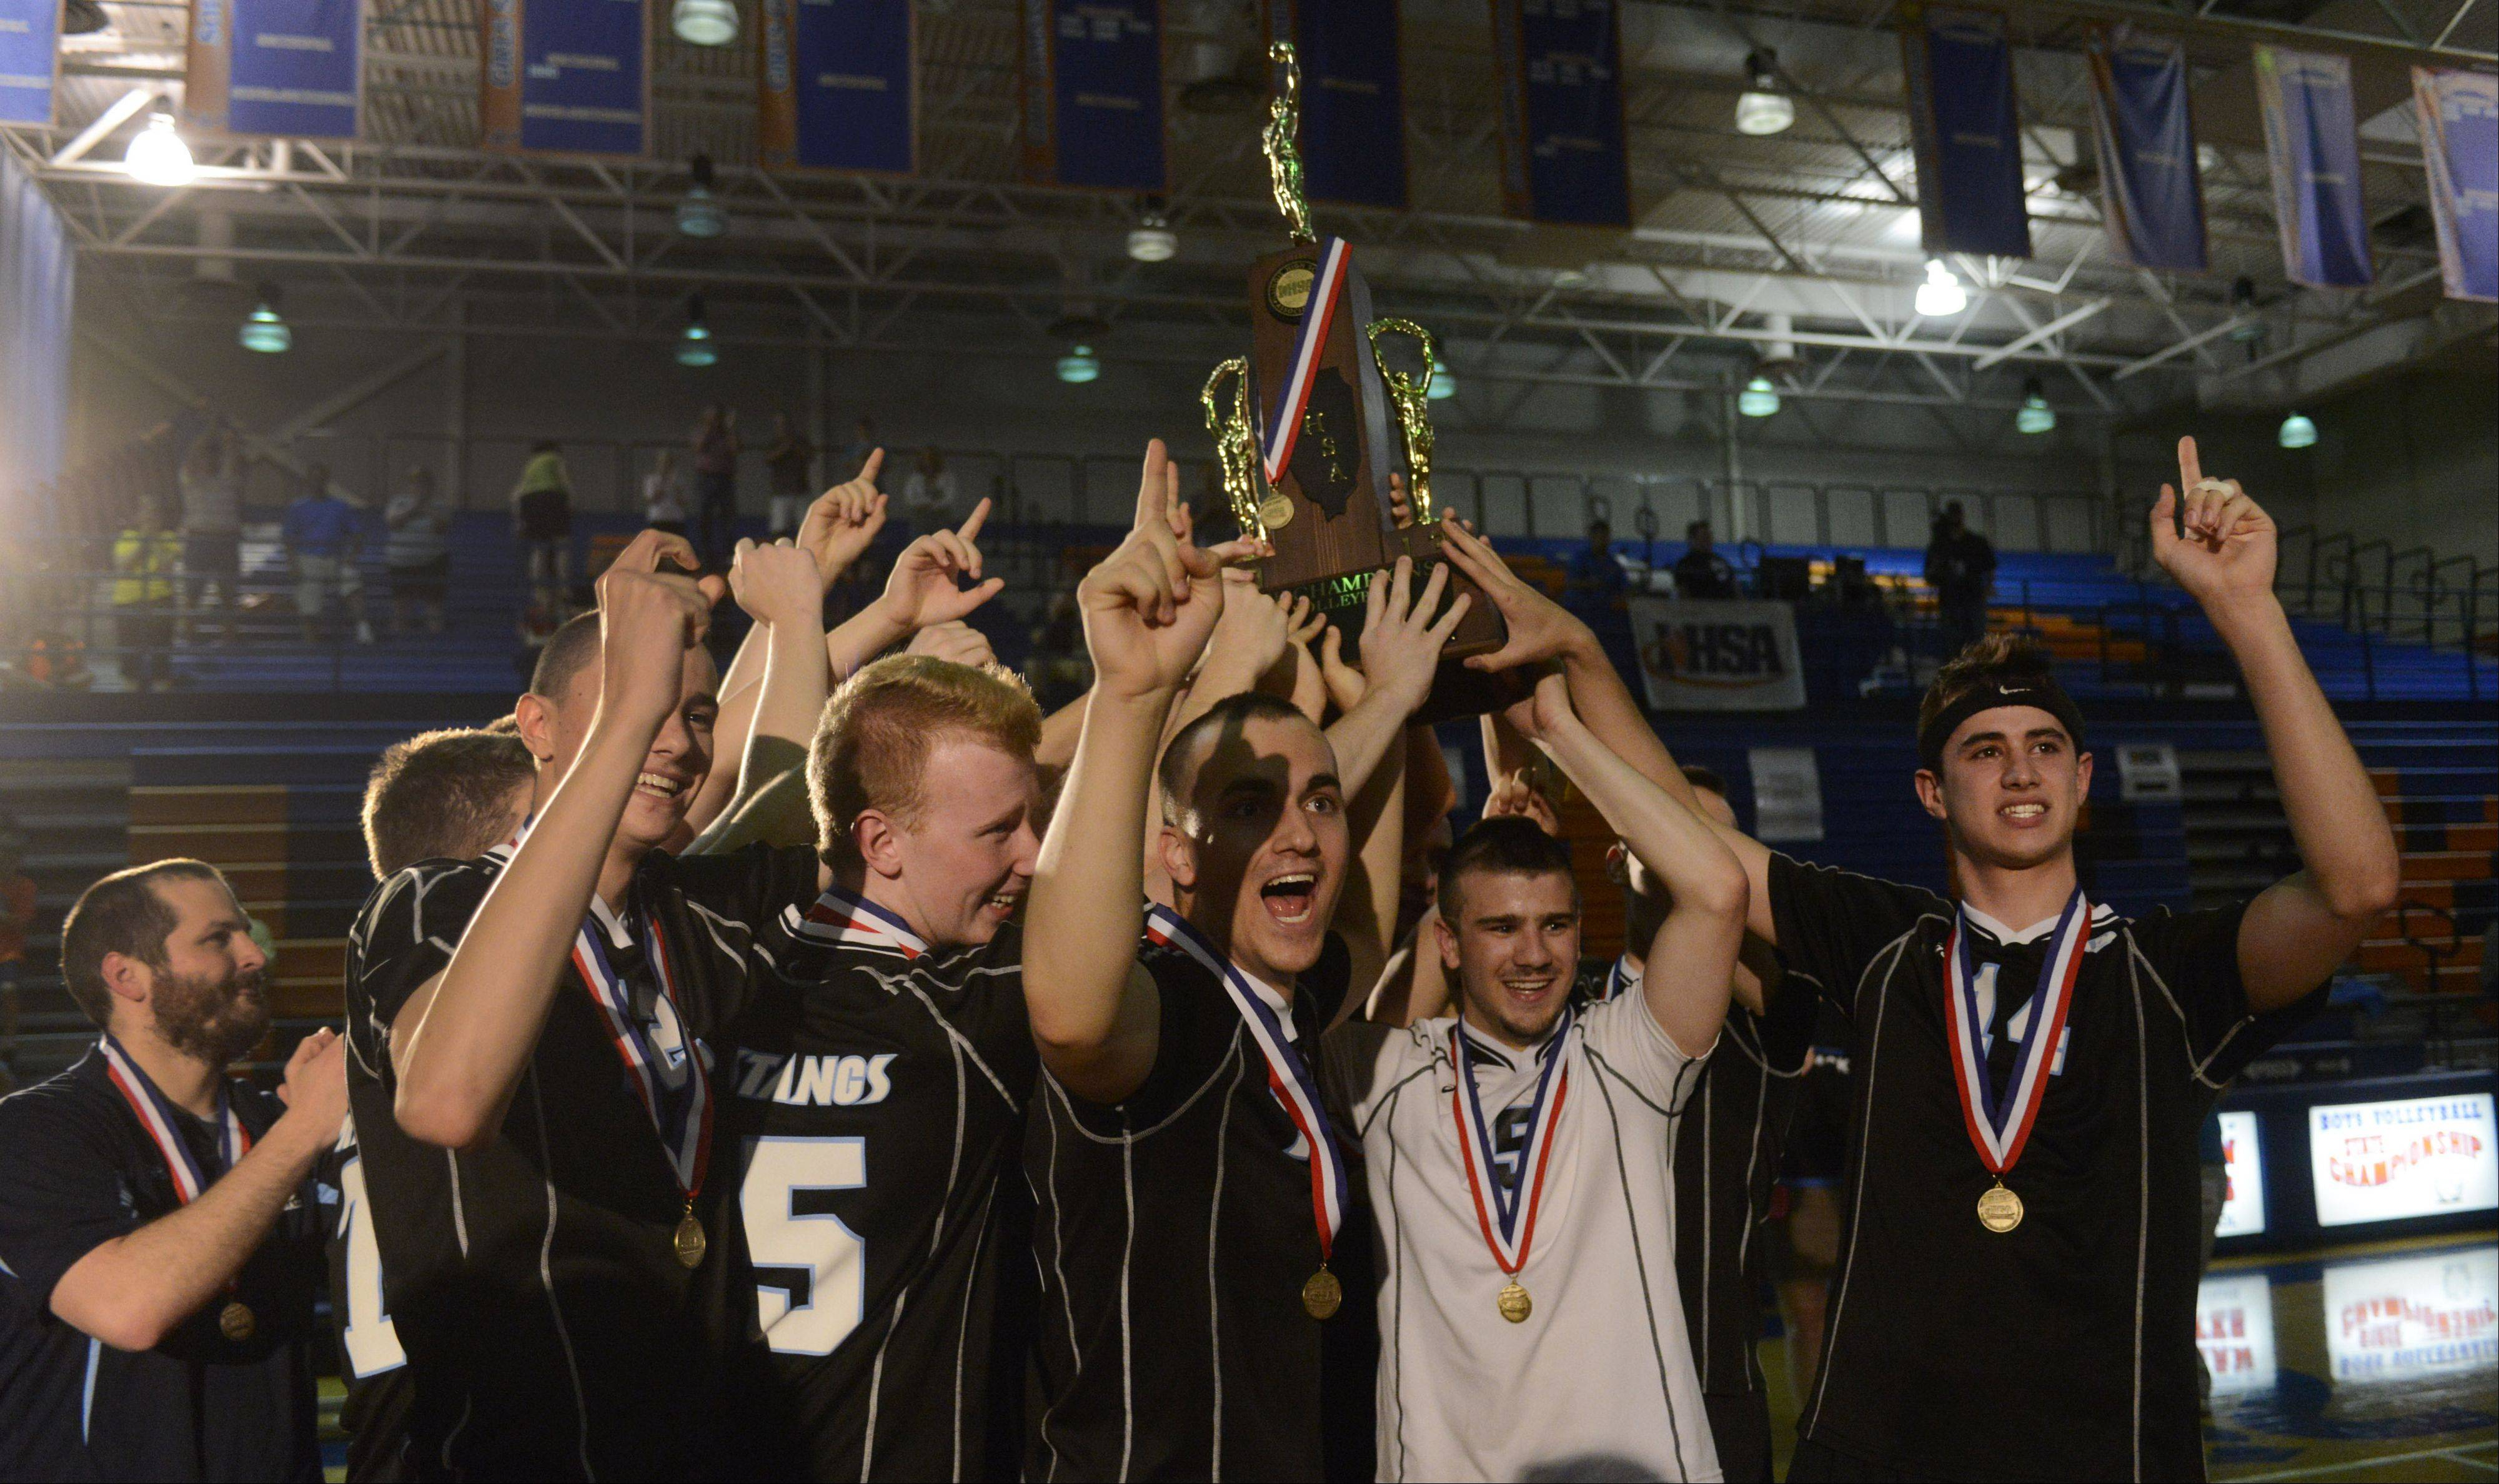 Members of the Downers Grove South boys volleyball team lift their first-place trophy following their win over Lincoln Way North in the state championship at Hoffman Estates High School Saturday.